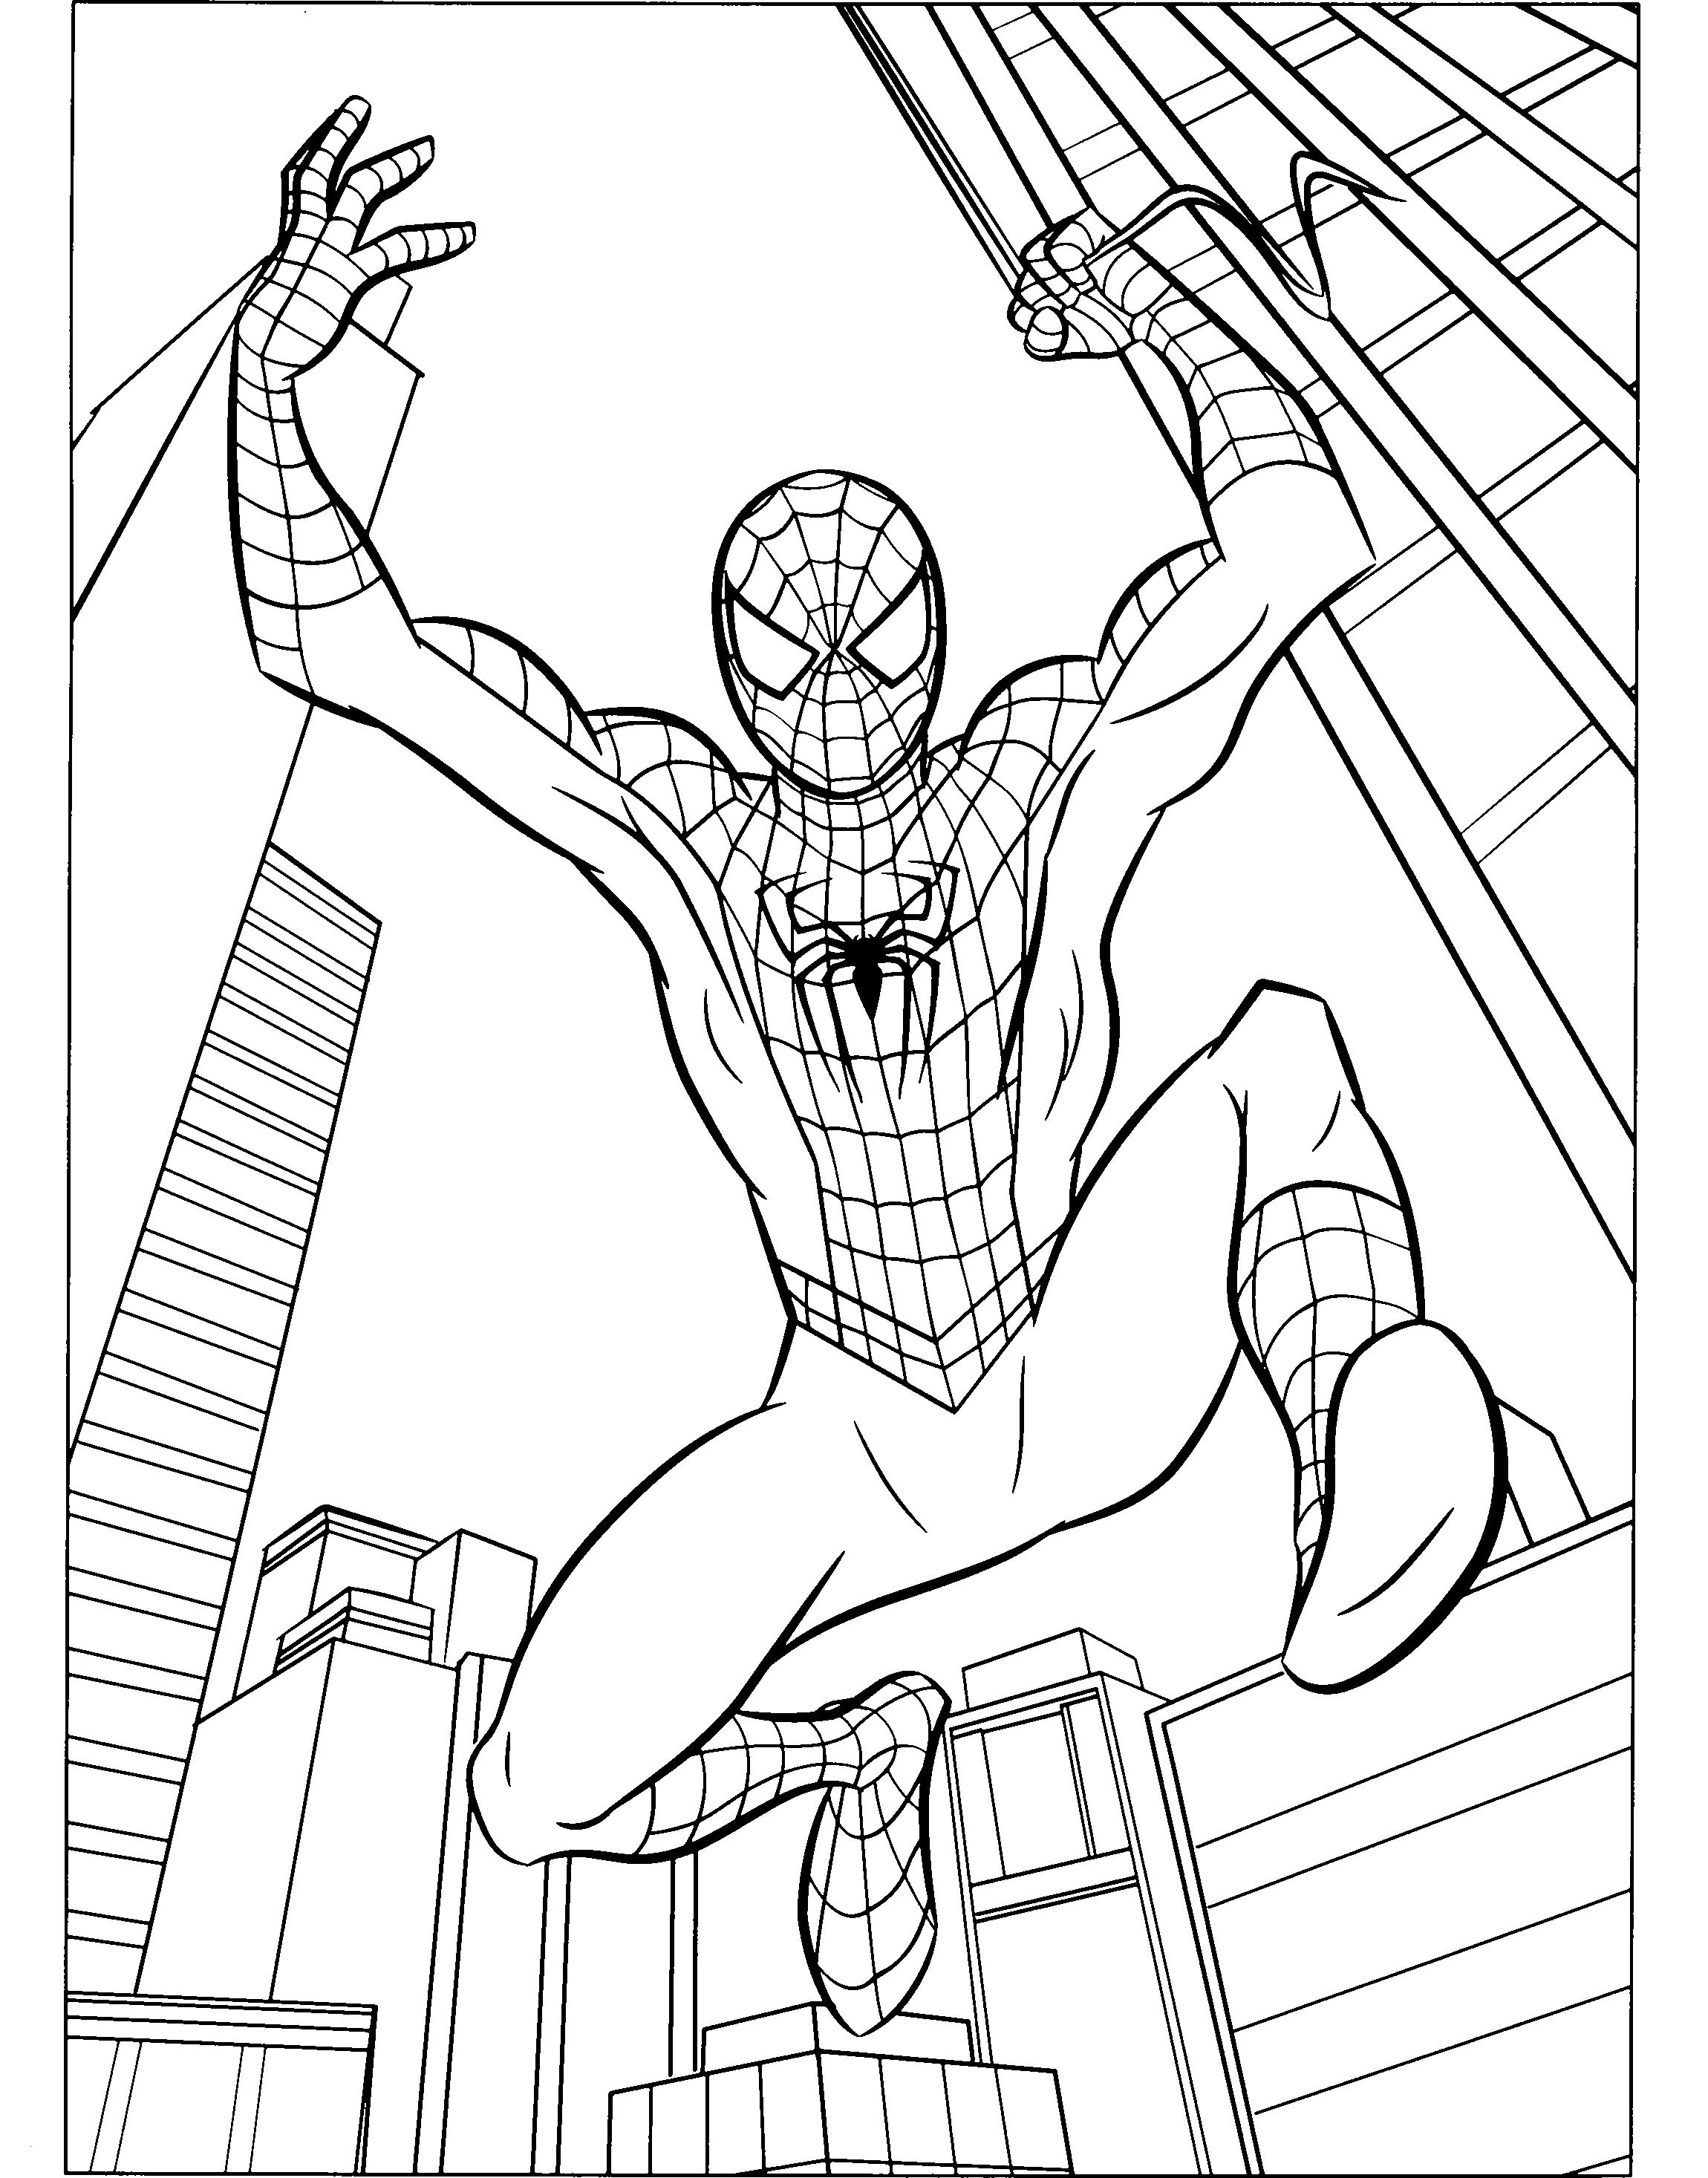 coloring spiderman drawing easy the best free spiderman drawing images download from 2353 coloring easy spiderman drawing